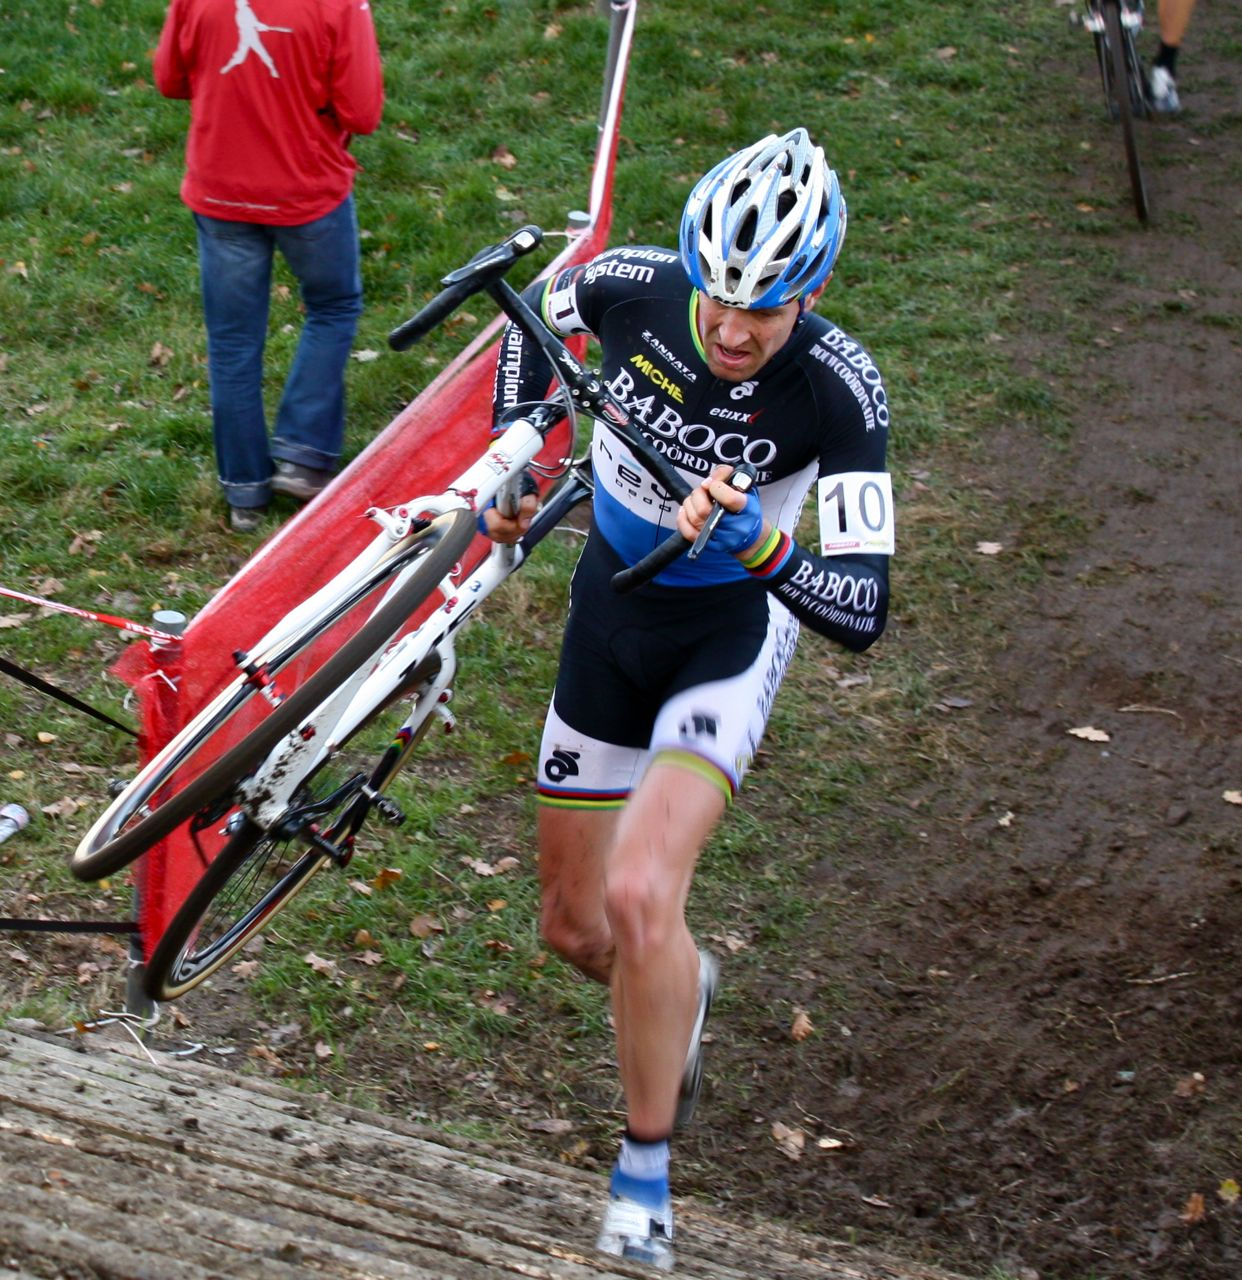 Erwin Vervecken Dominated the Chase Group ?Dan Seaton